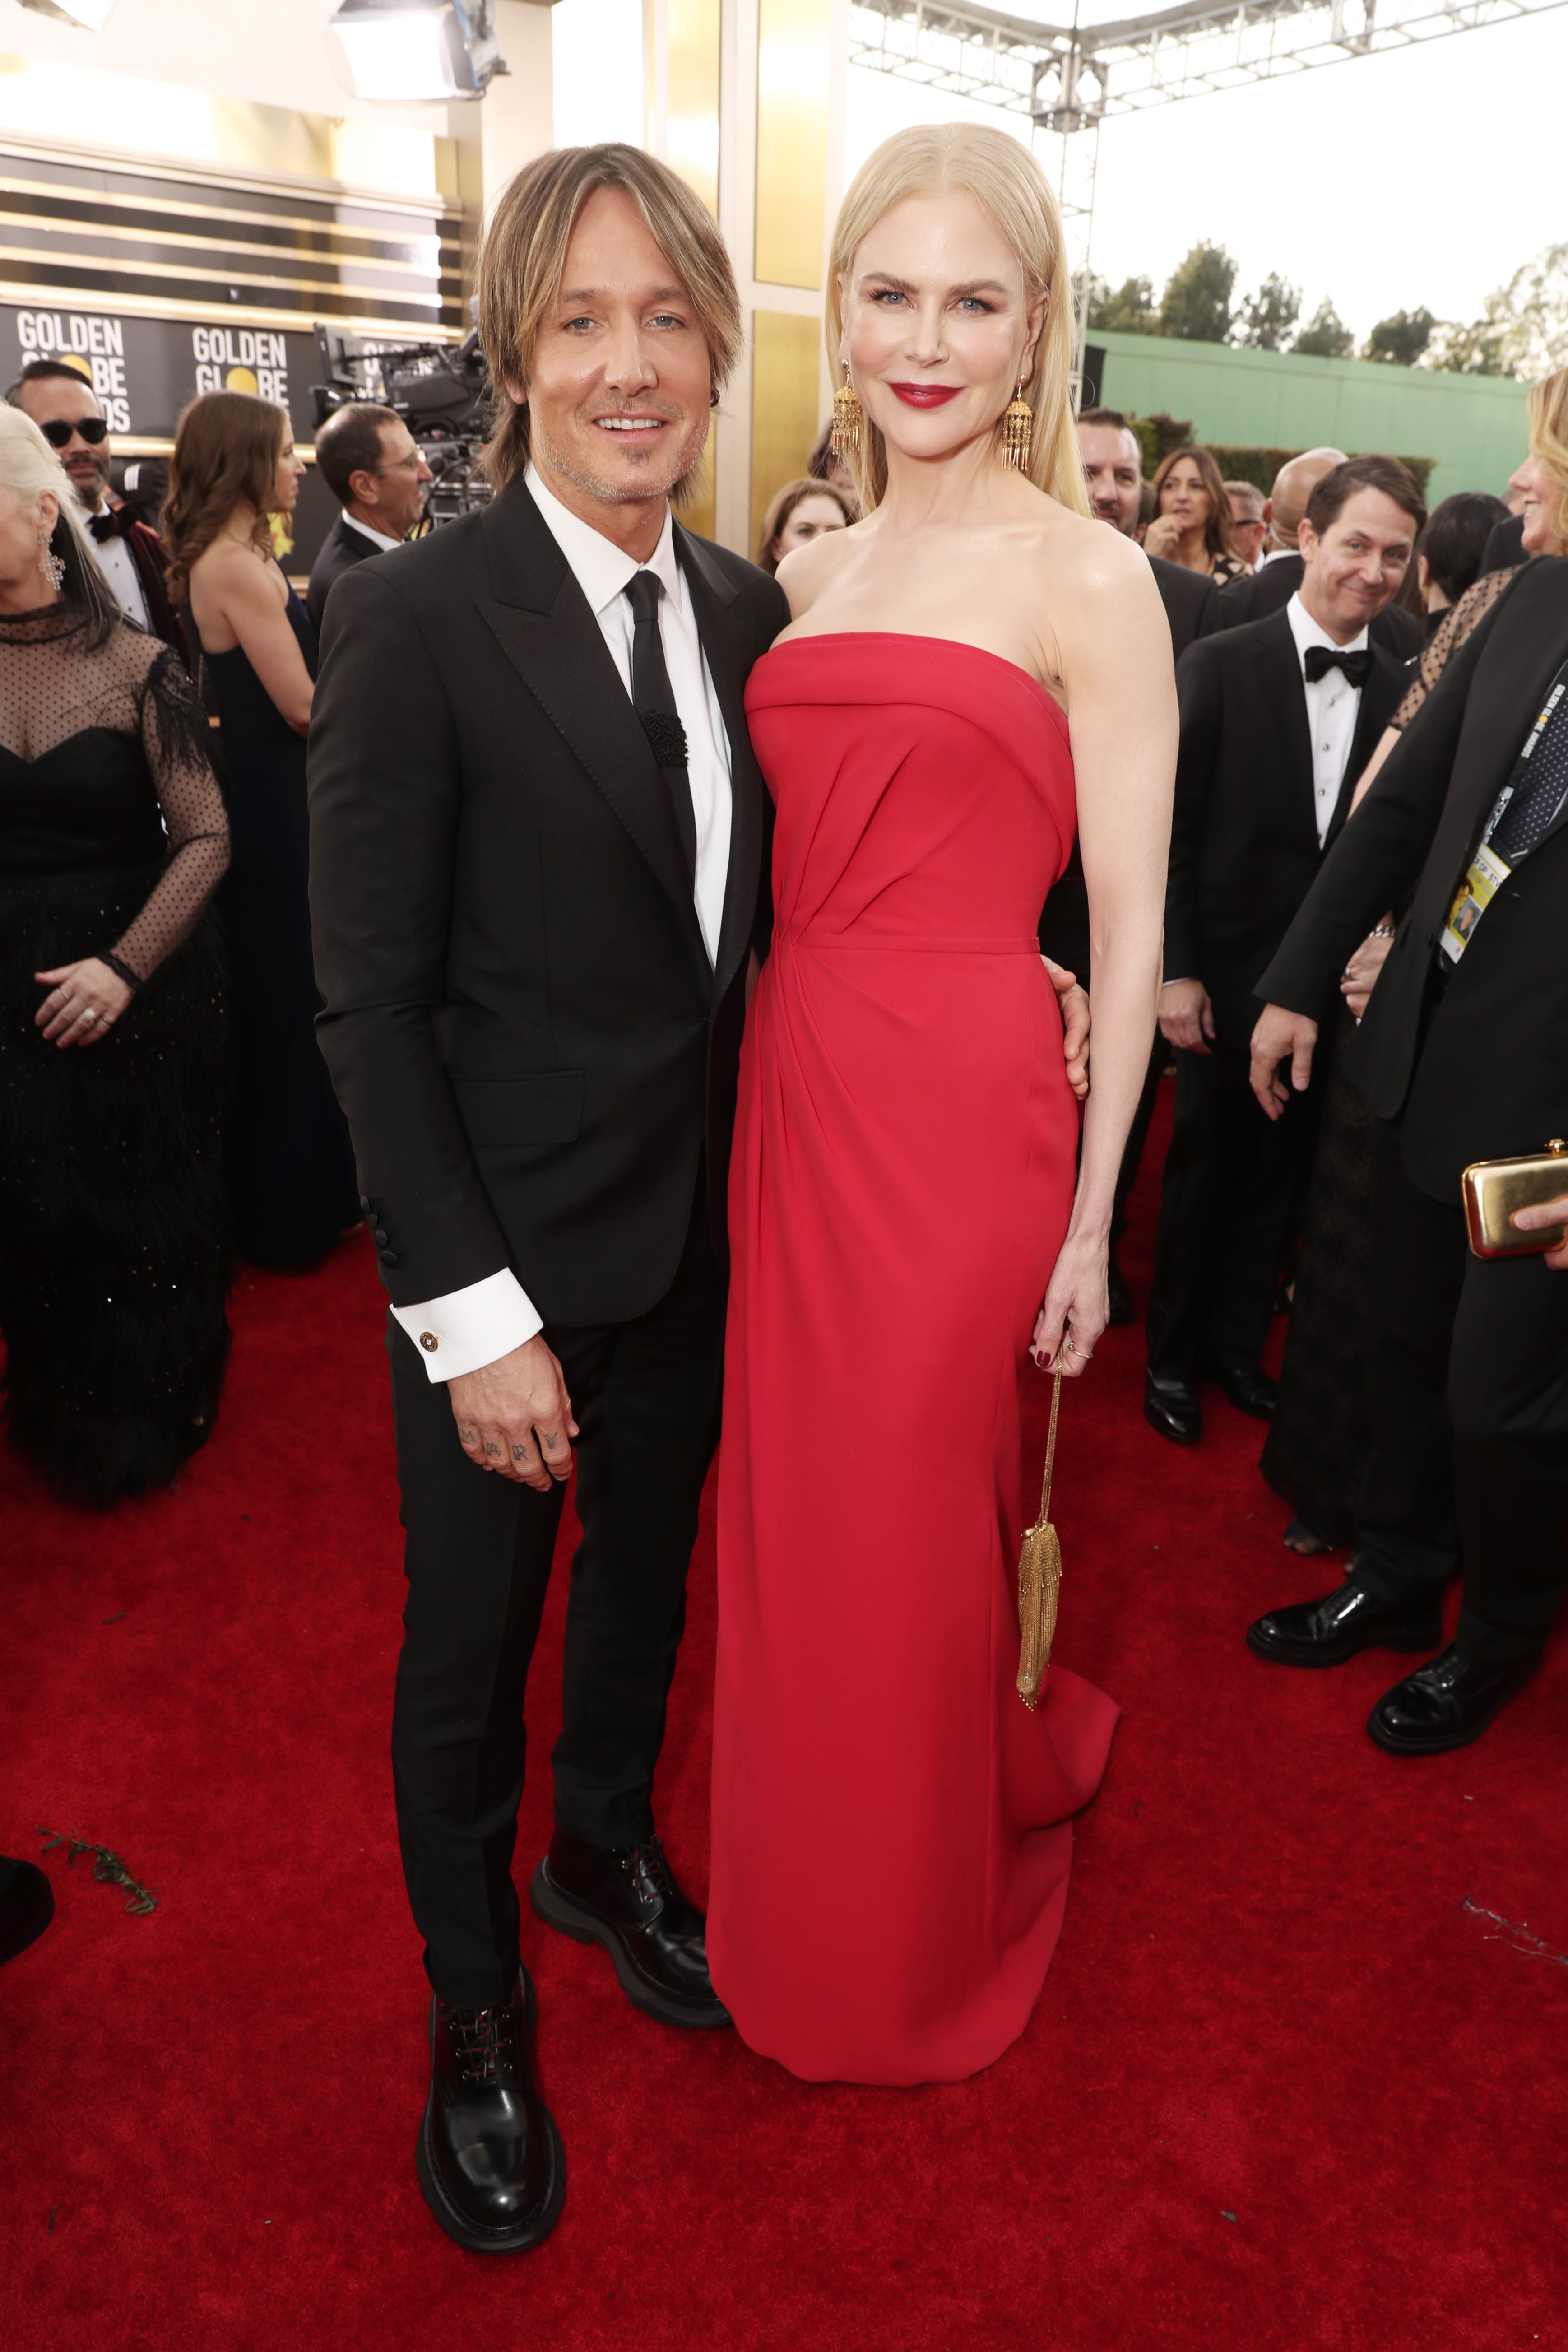 BEVERLY HILLS, CALIFORNIA - JANUARY 05: 77th ANNUAL GOLDEN GLOBE AWARDS -- Pictured: (l-r) Keith Urban and Nicole Kidman arrive to the 77th Annual Golden Globe Awards held at the Beverly Hilton Hotel on January 5, 2020. -- (Photo by: Todd Williamson/NBC/NBCU Photo Bank via Getty Images)